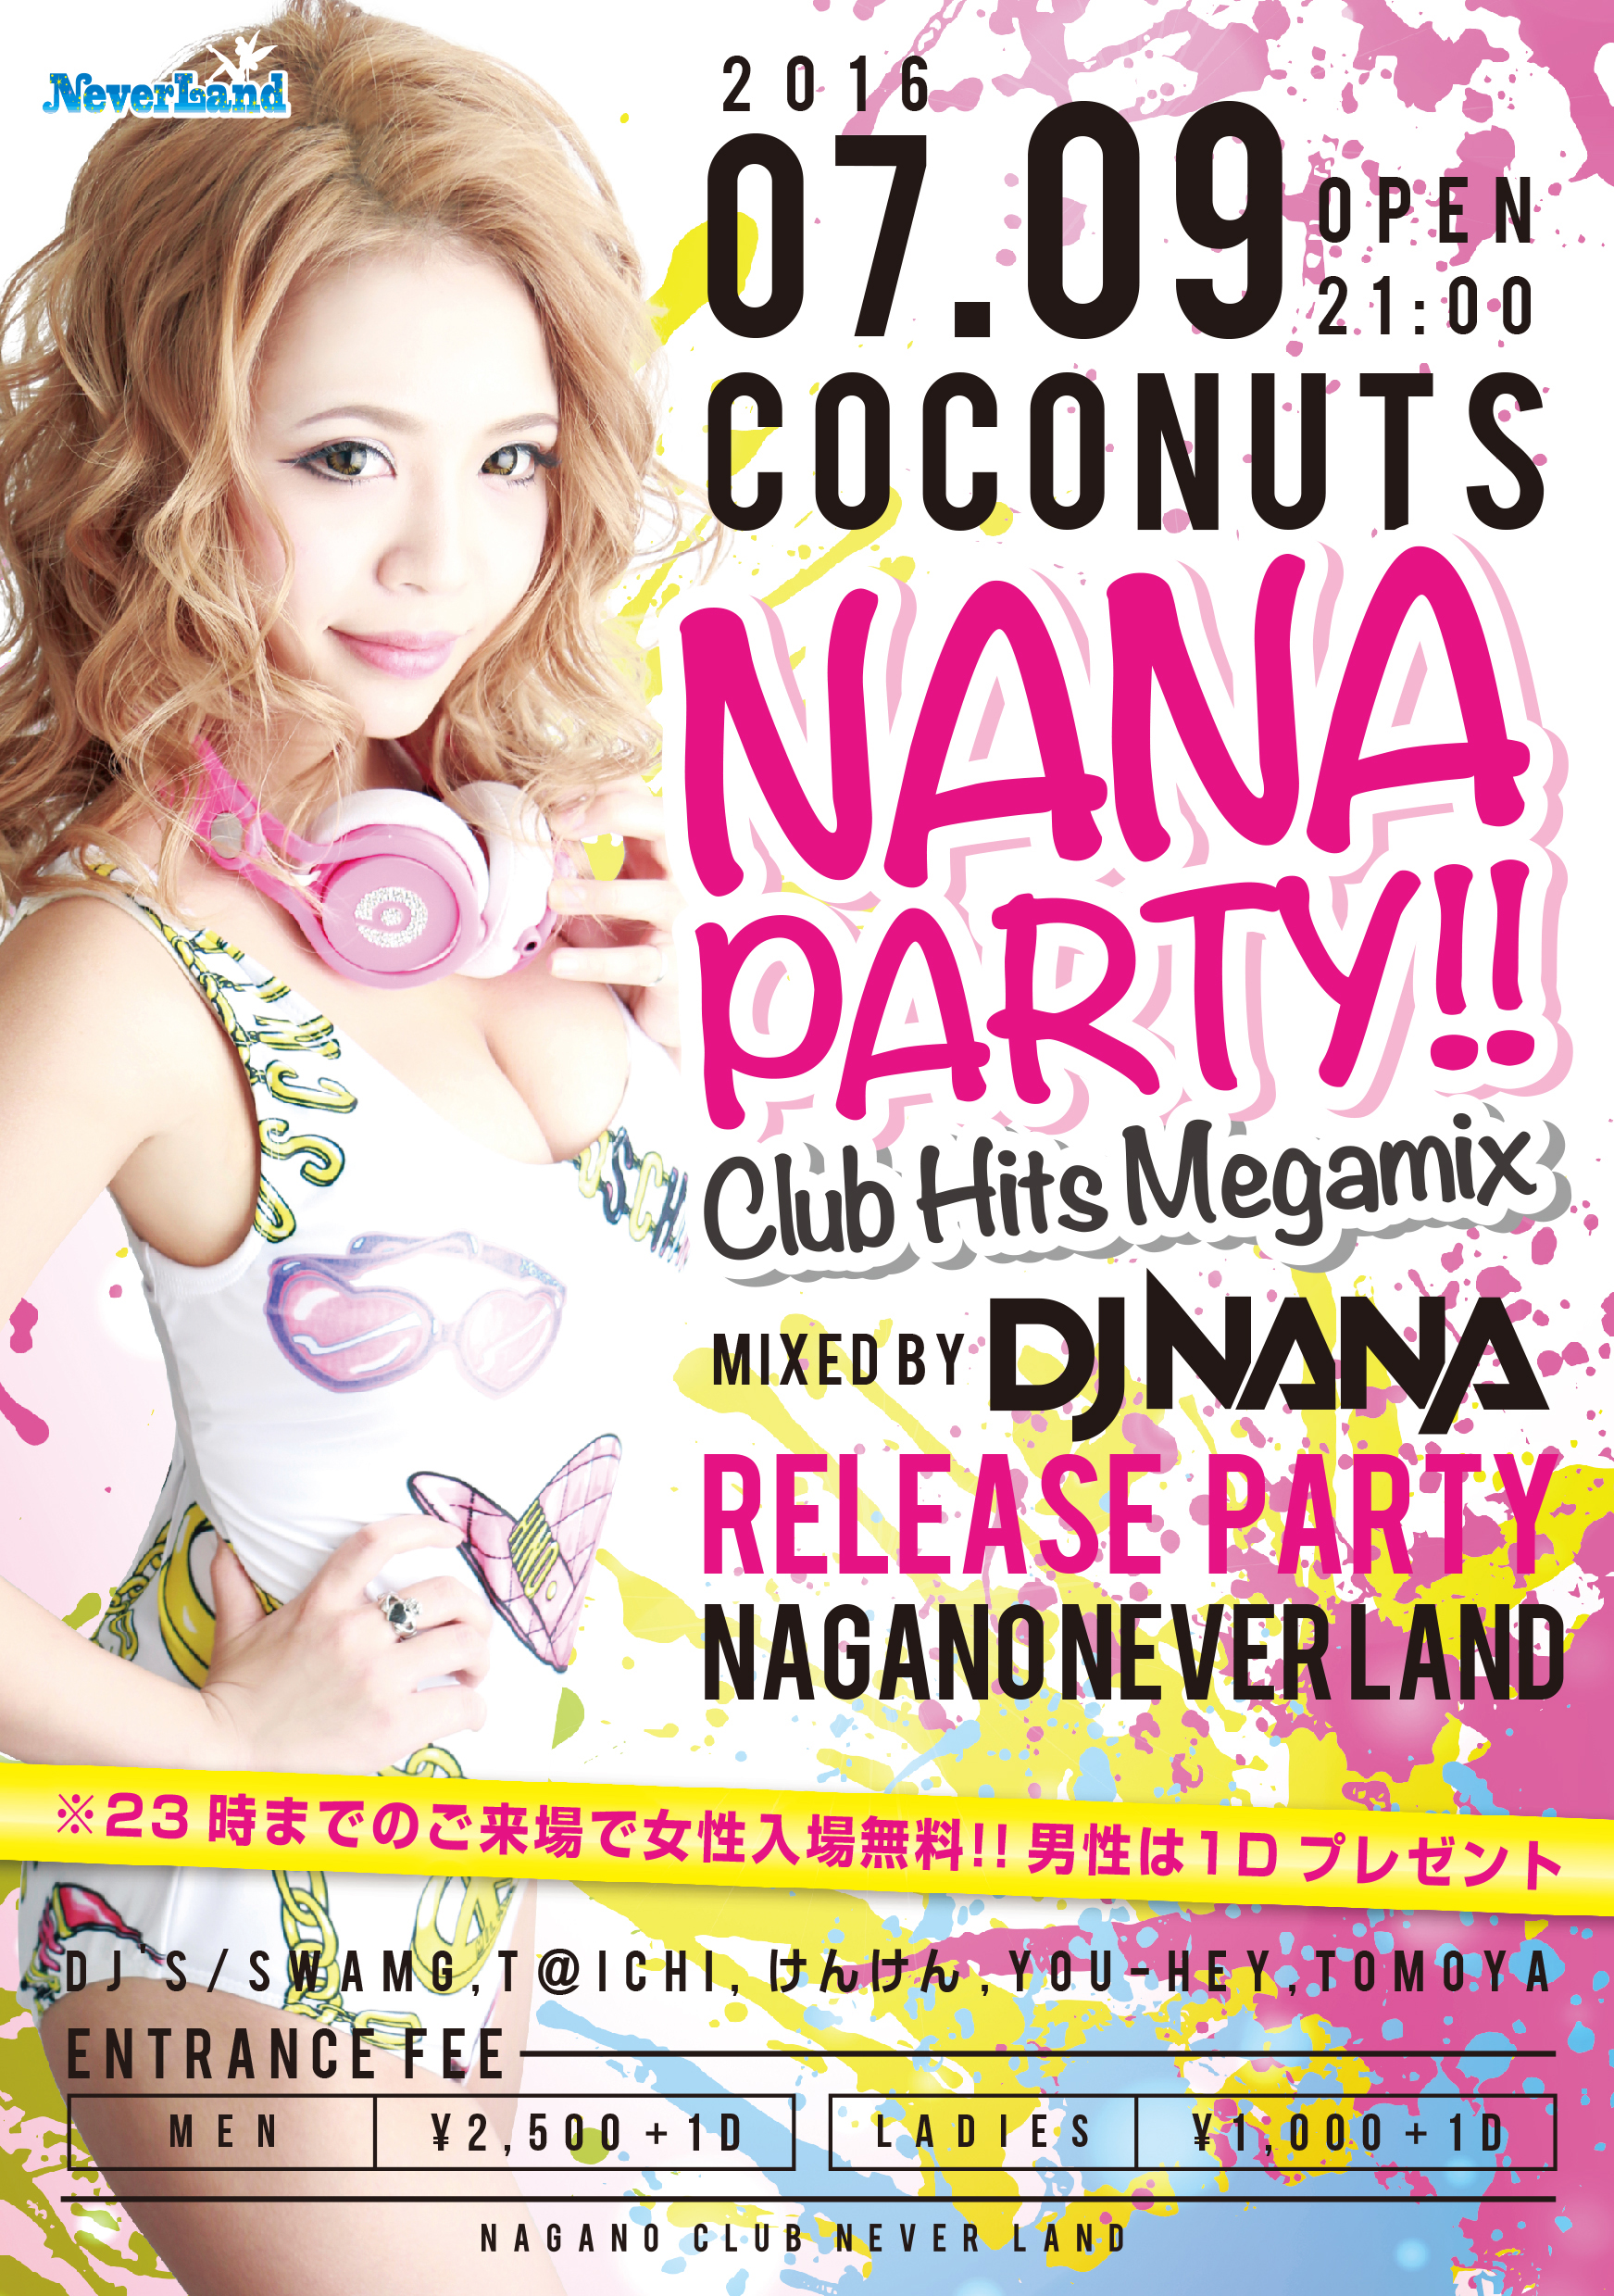 neverland_coconuts5